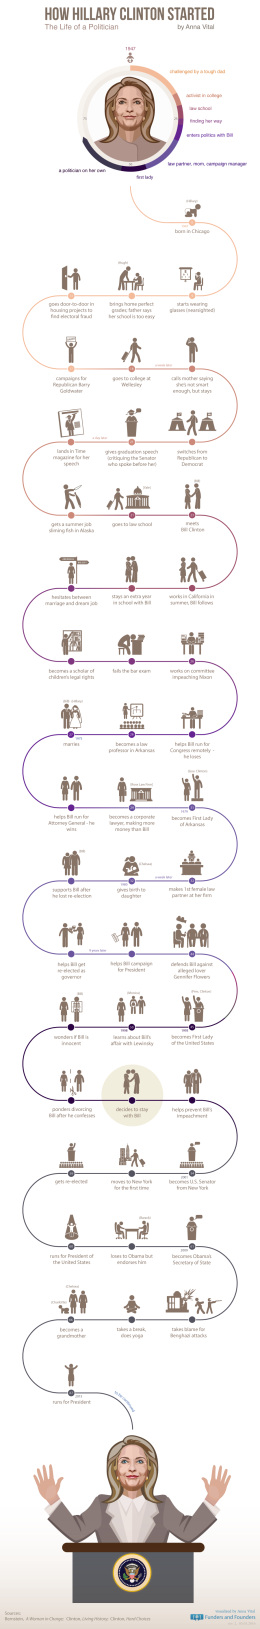 how-hillary-clinton-started-infographic